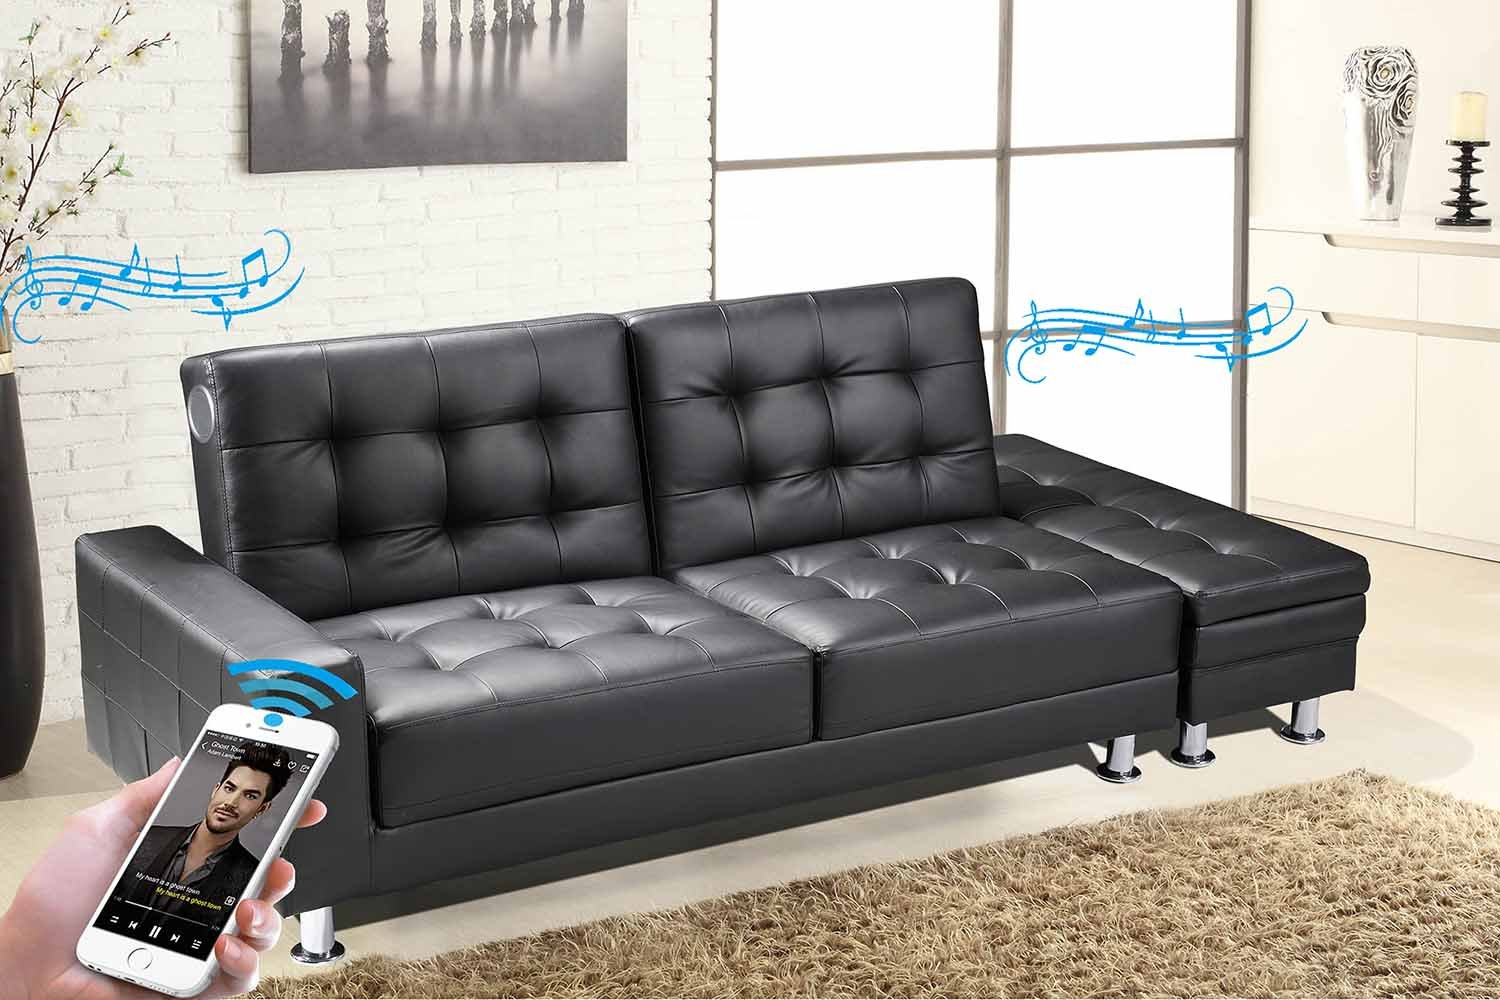 New Contemporary Modern Knightsbridge Faux Leather Storage Ottoman Fold  Down Sofa Bed In Black With Built In Bluetooth Stereo Speakers (Black): ...